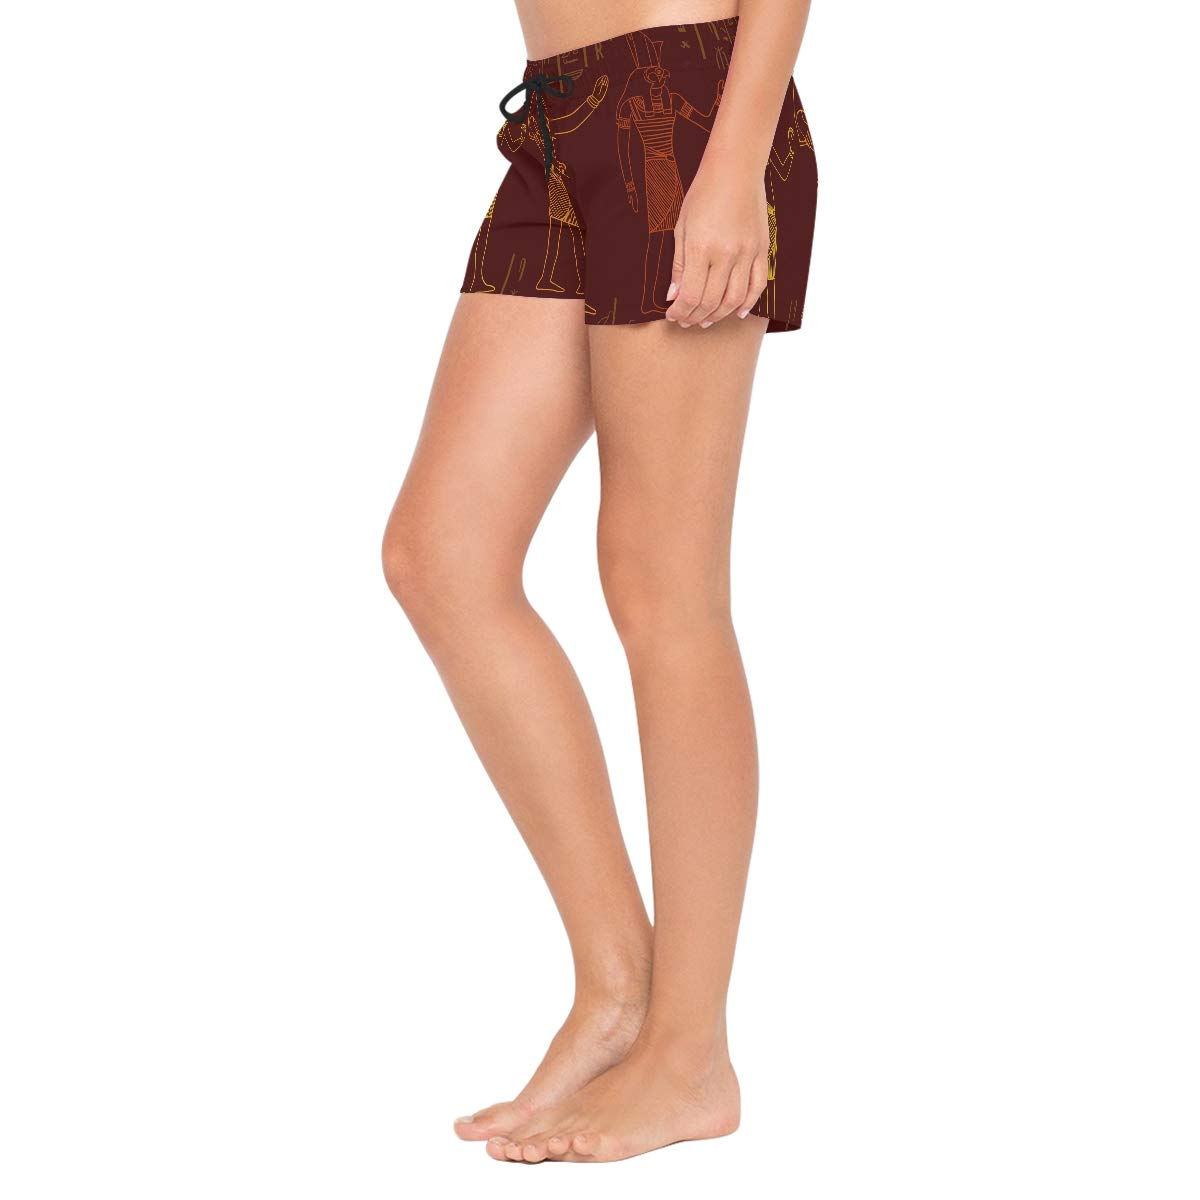 XiangHeFu Womens Beach Shorts Ancient Egyptian Style Swim Trunk with Pockets